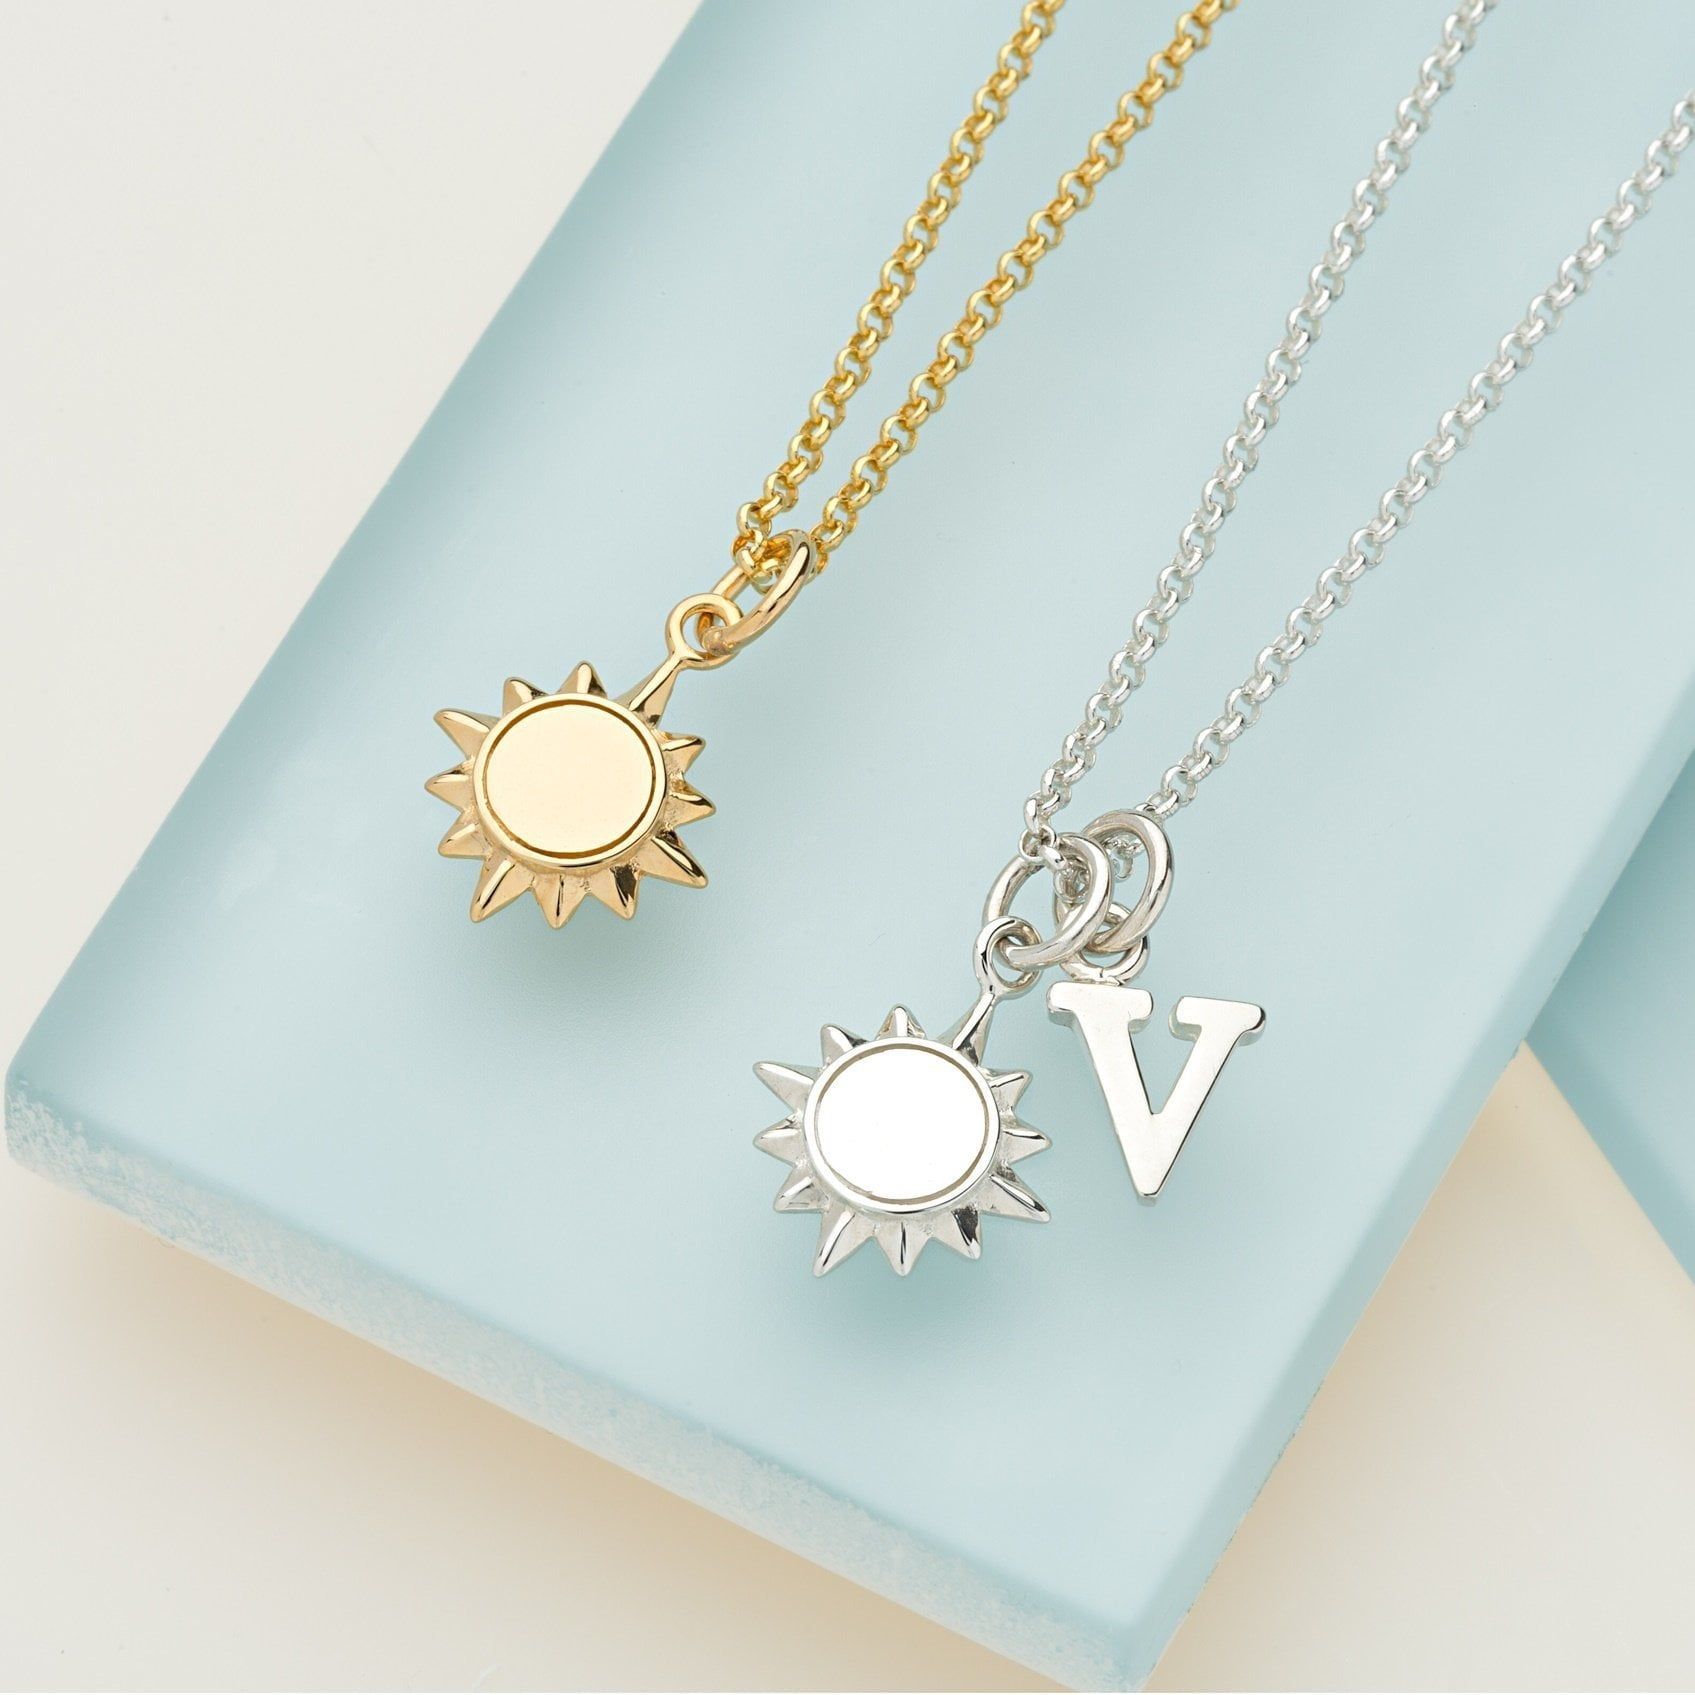 Personalised Gold Plated Sunshine Necklace - Lily Charmed